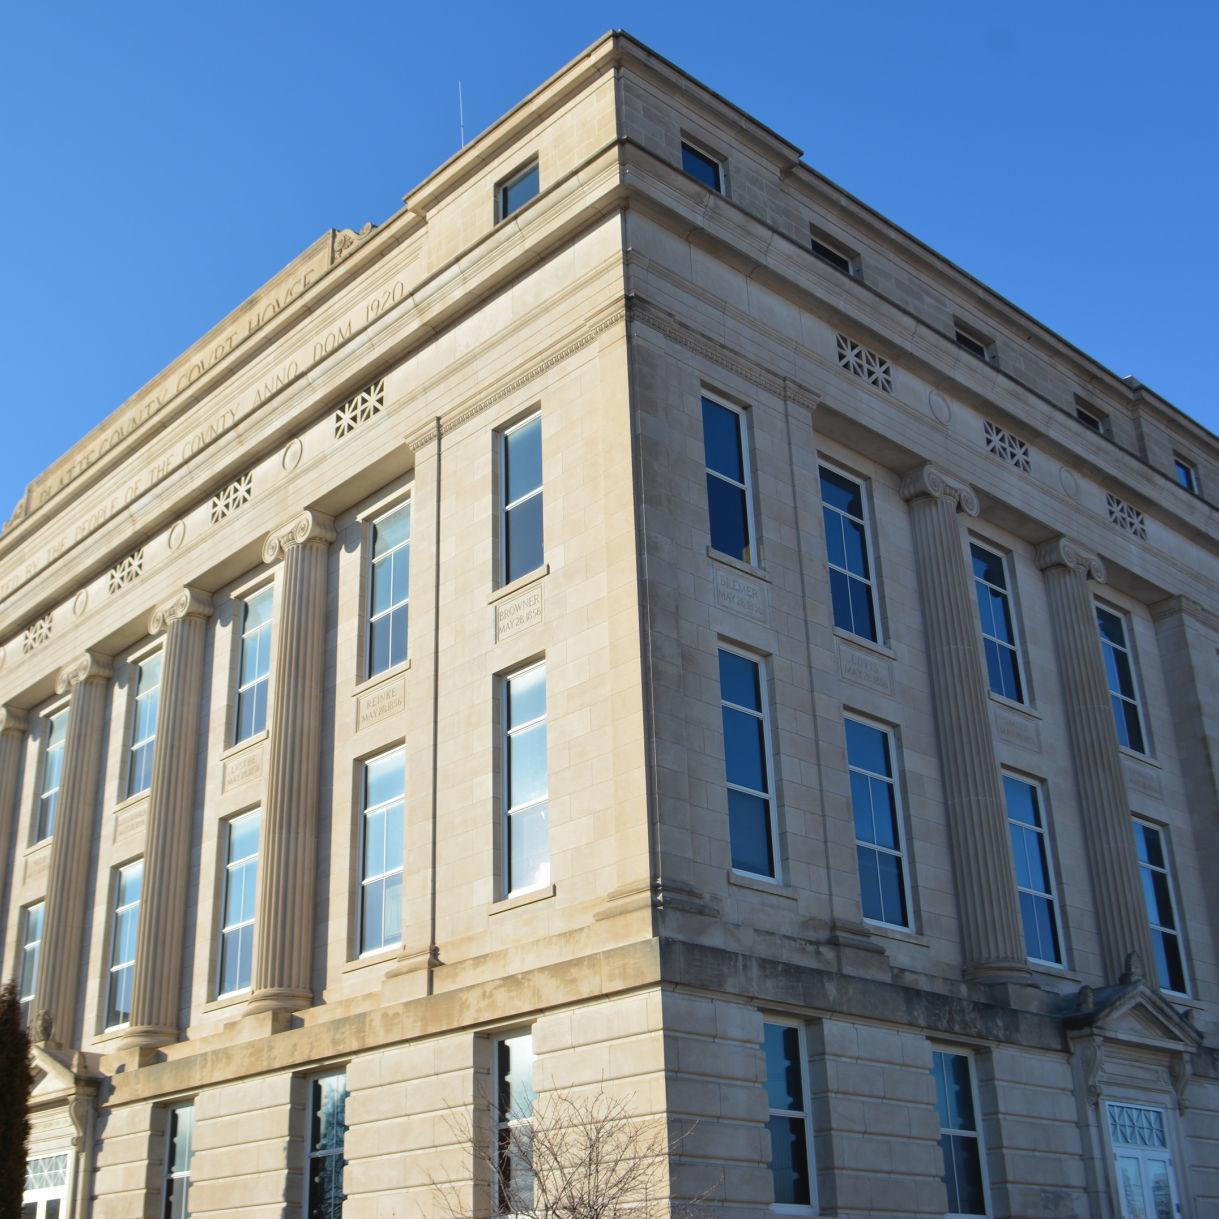 Several recently sentenced to jail/prison in Platte County